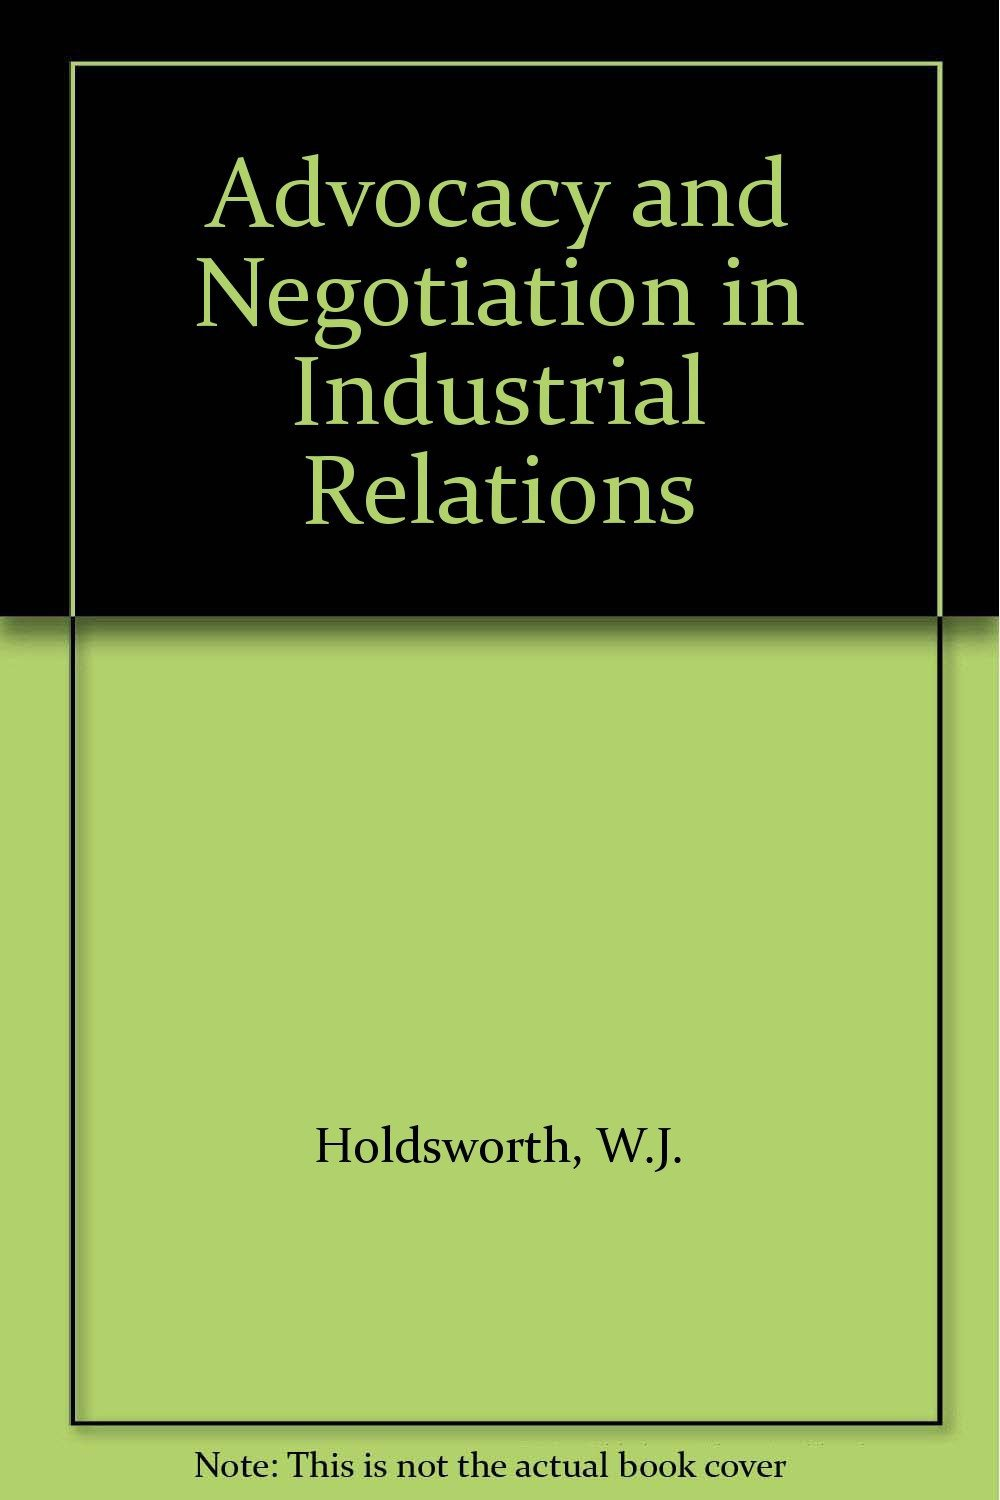 Advocacy and Negotiation in Industrial Relations